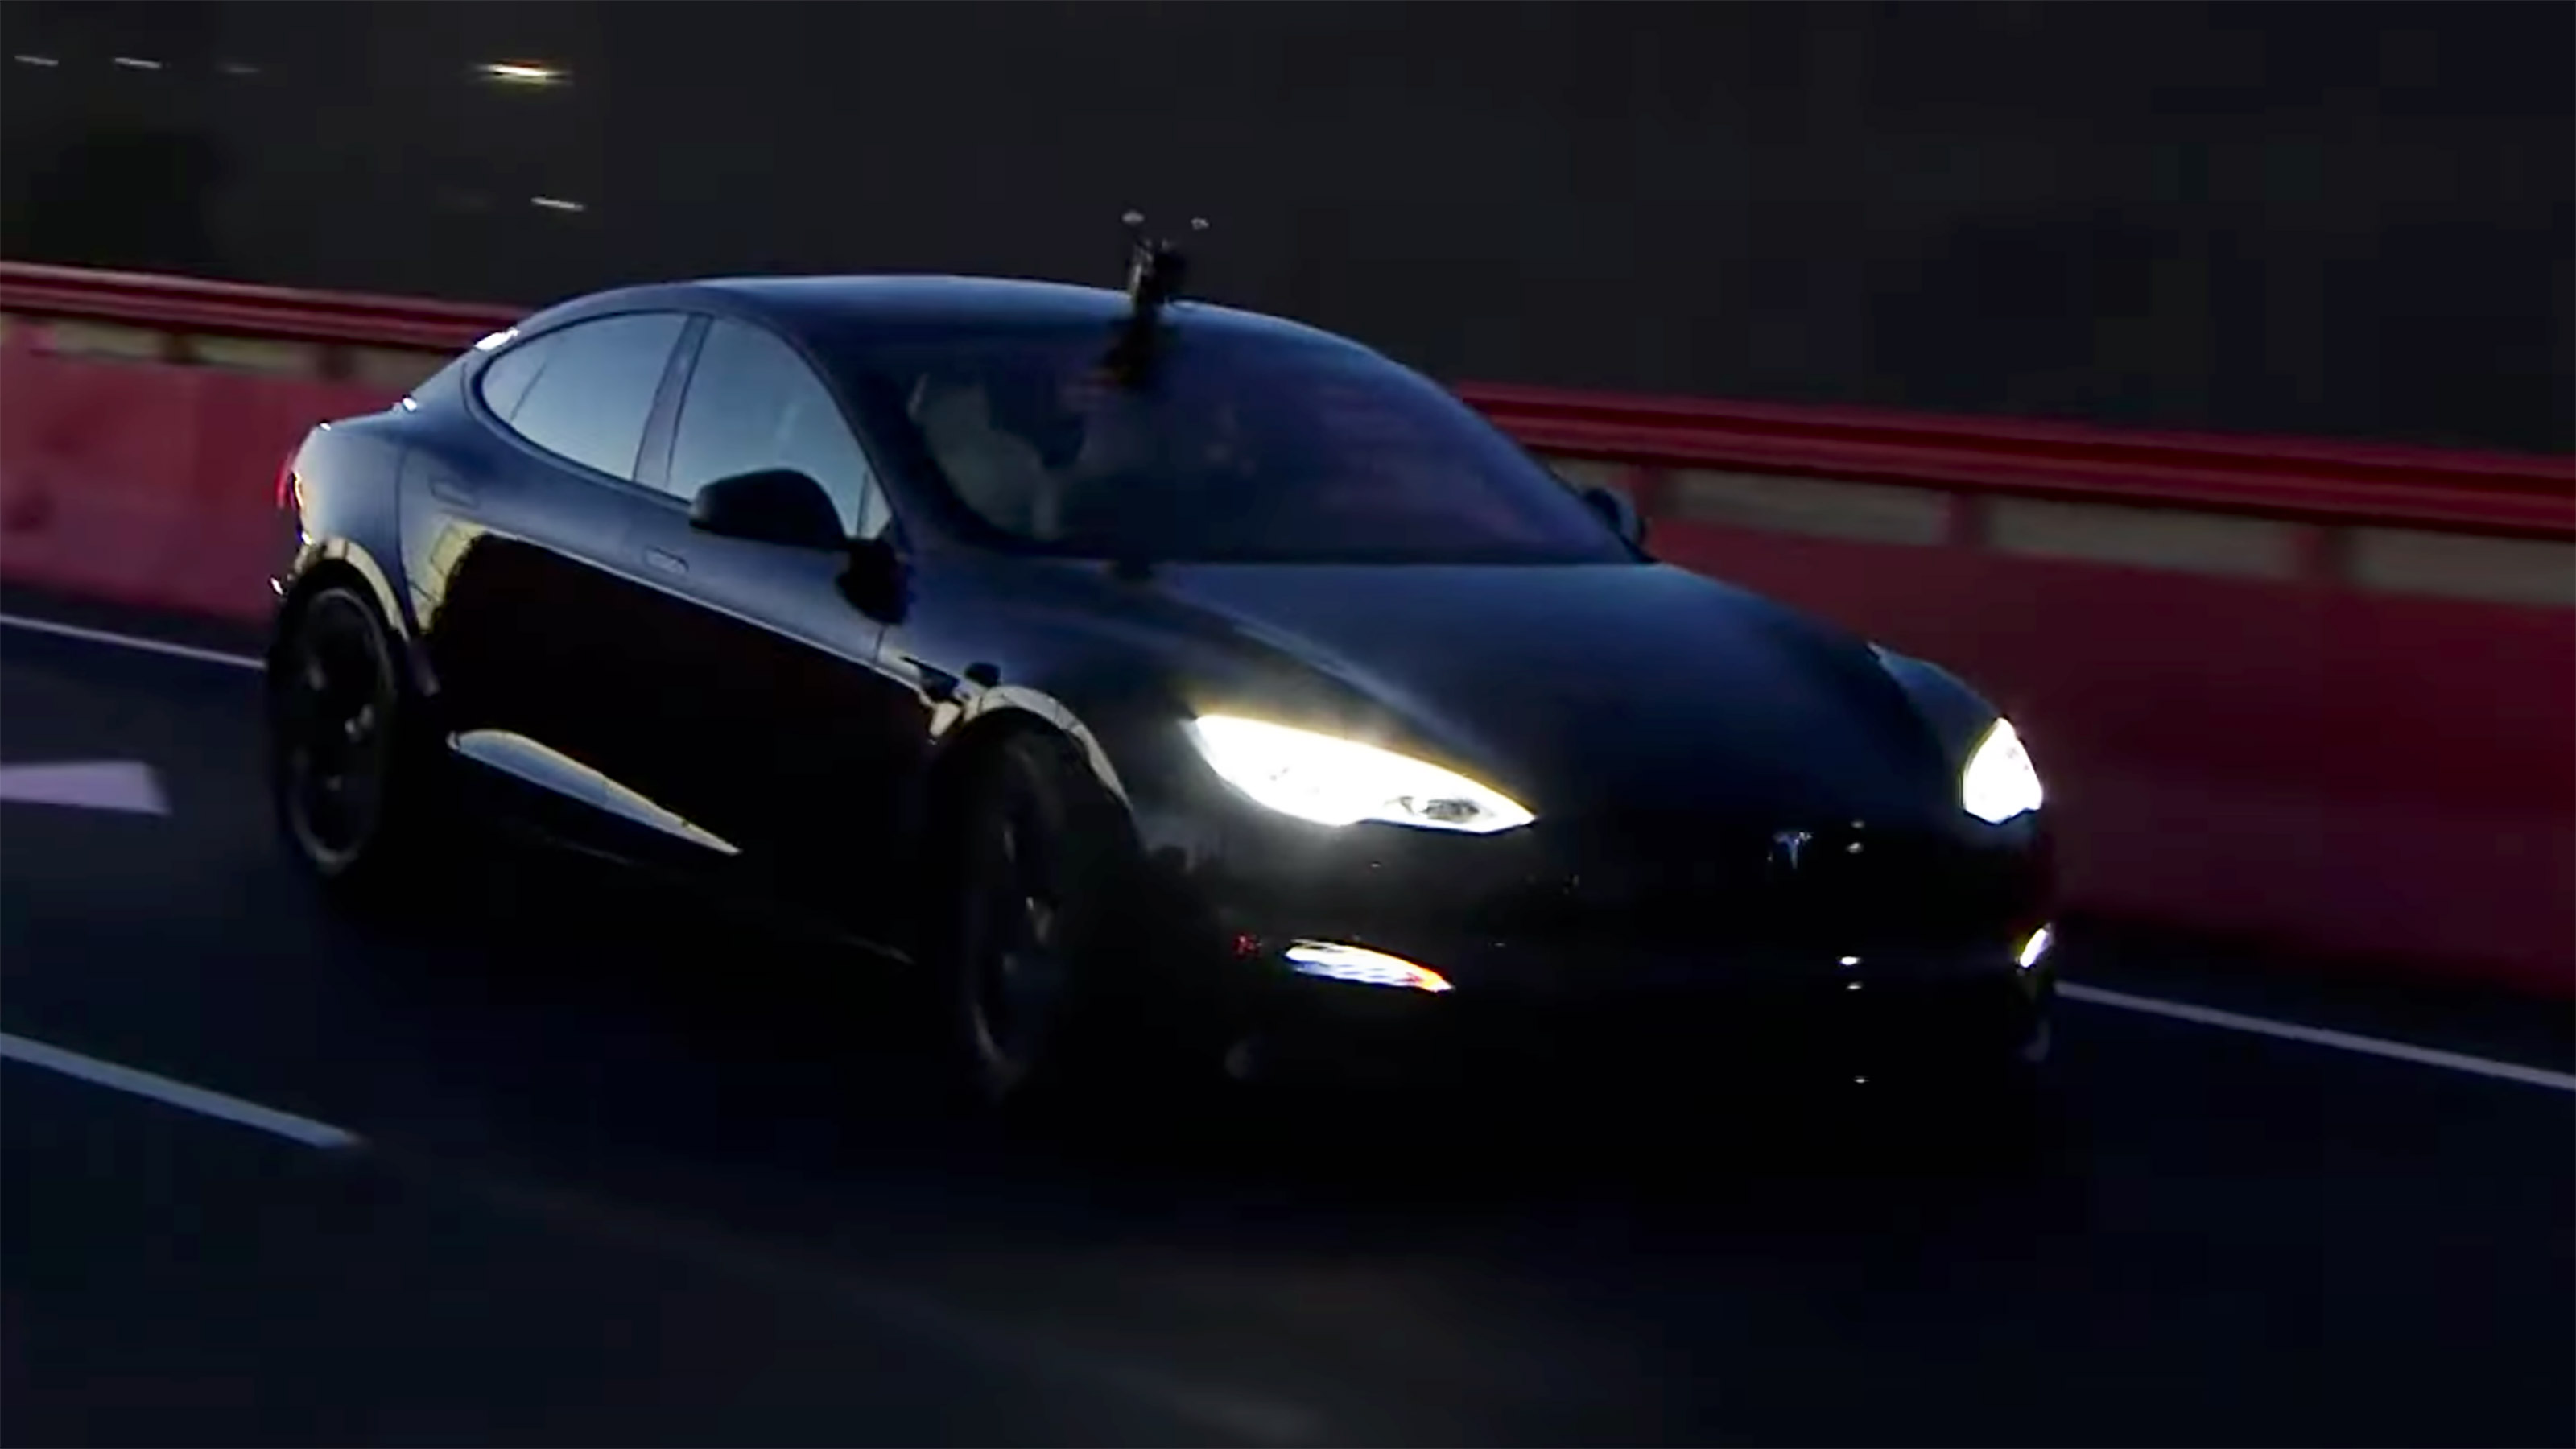 A few days after unveiling the top-of-the-line Model S Plaid, Tesla filmed a video at a premiere in Fremont where the car seemed to have launched 0-60 mph within the promised time of 1.99 seconds.